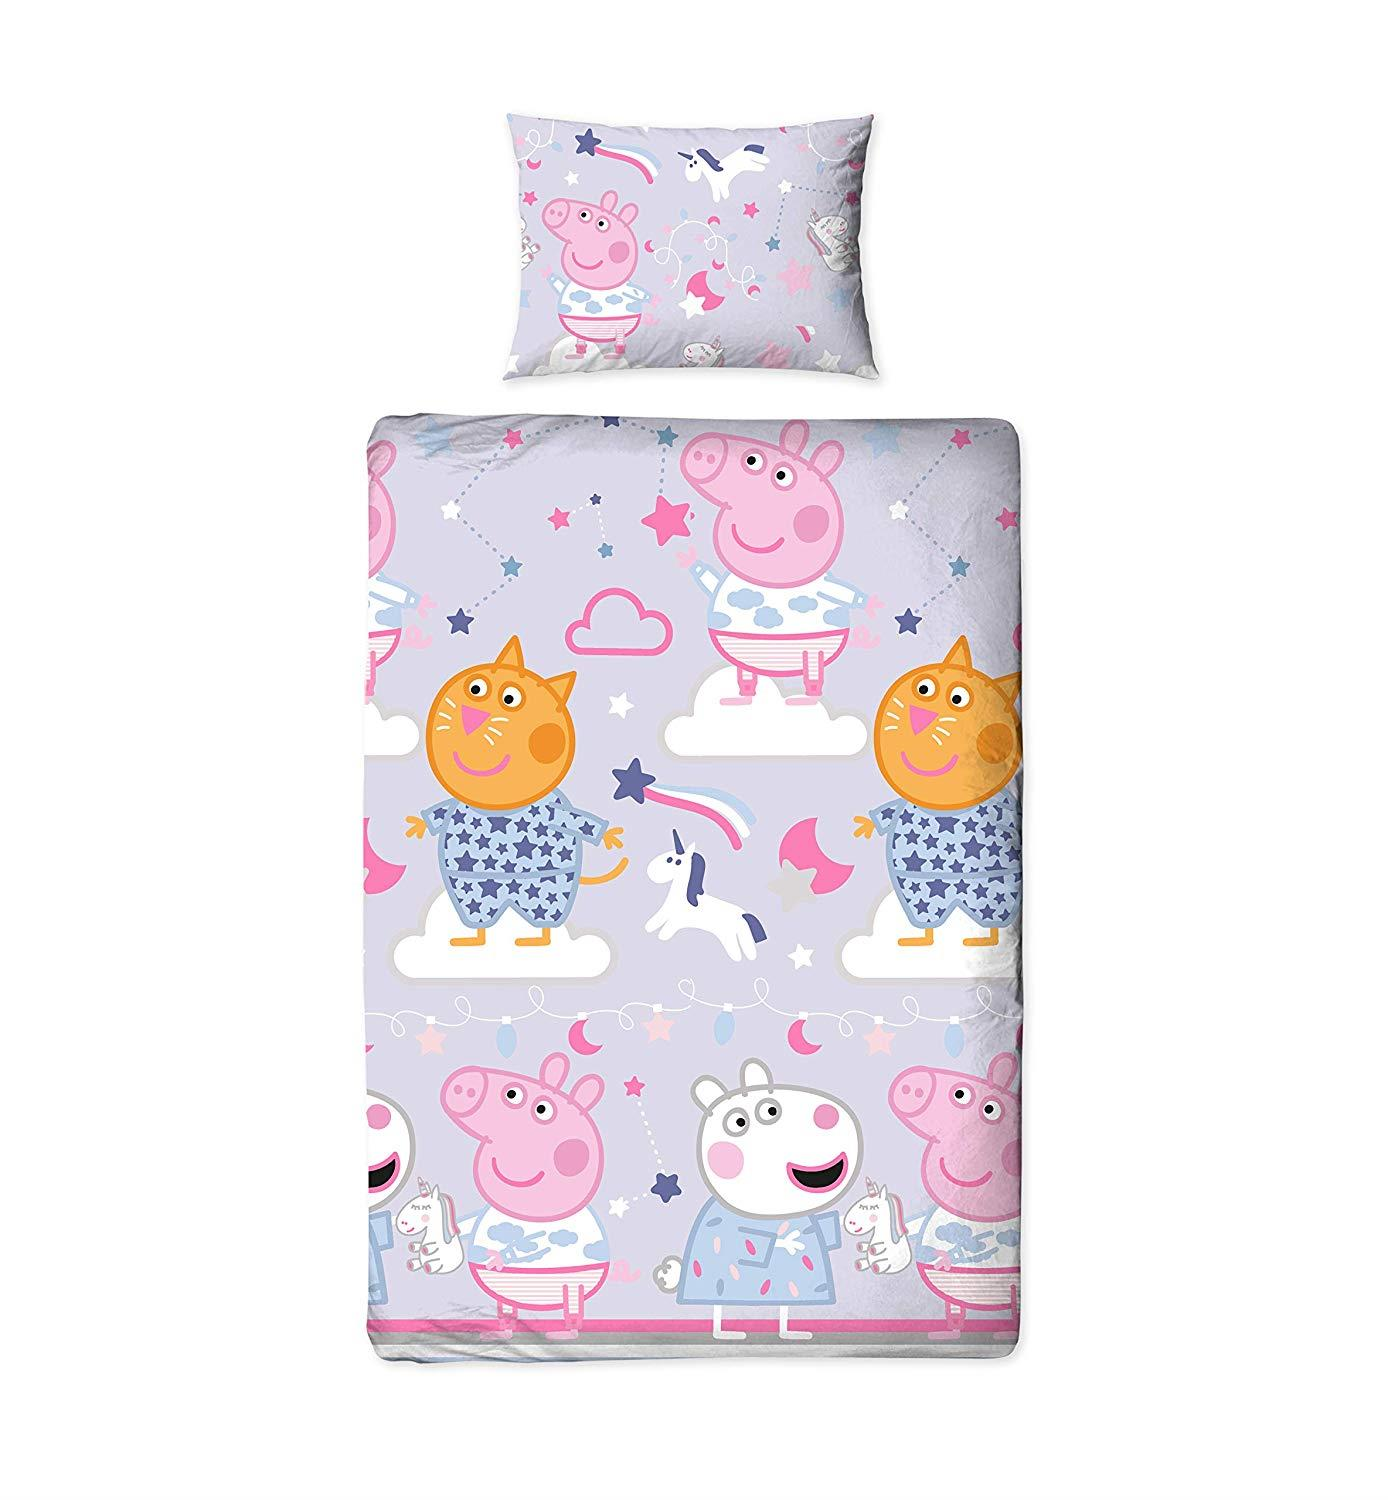 Oficial-Peppa-Pig-George-fundas-nordicas-SINGLE-doble-Ropa-De-Cama-Reversible miniatura 33